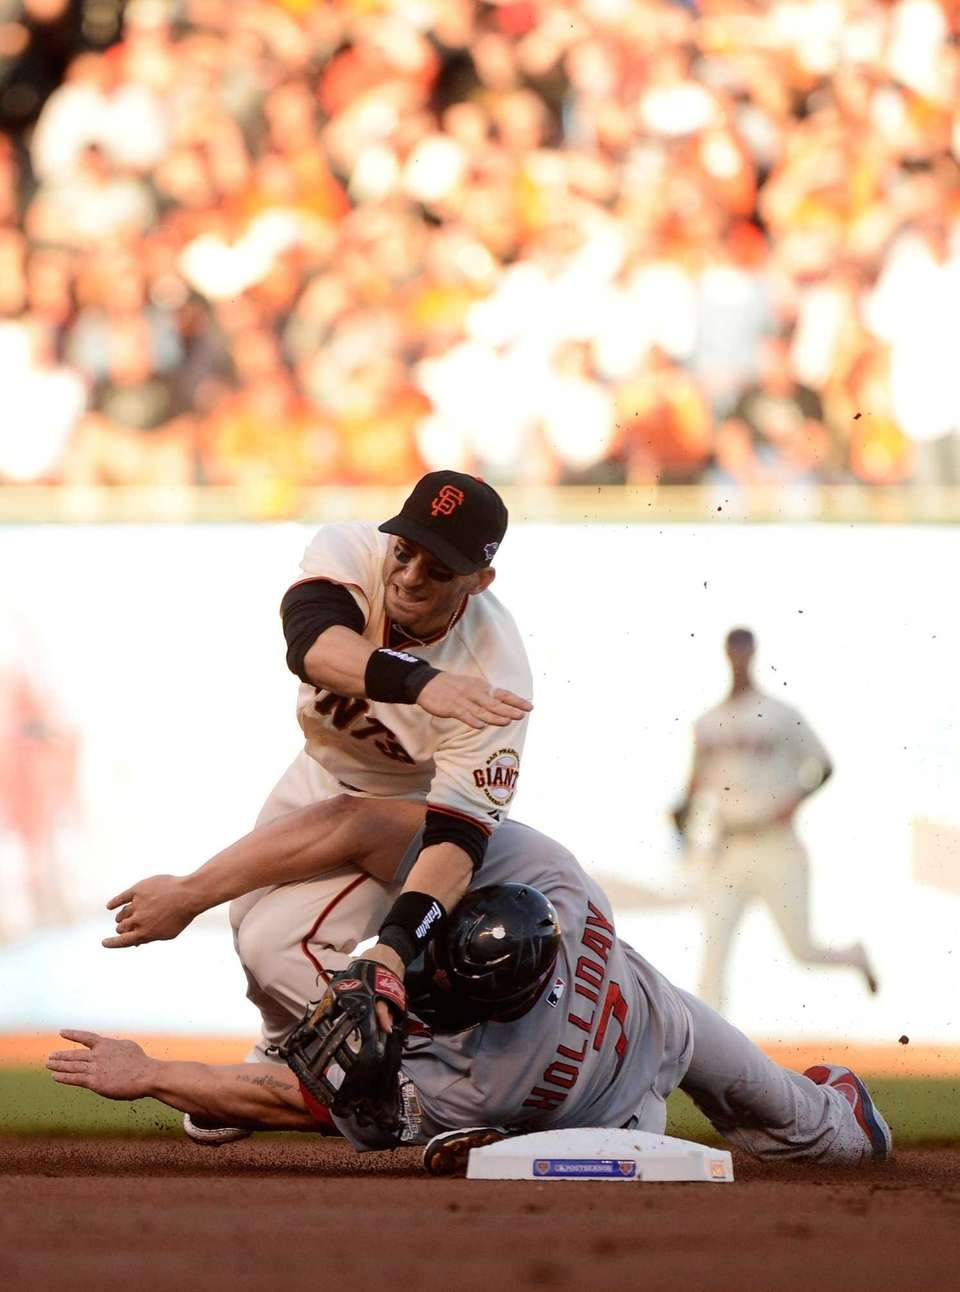 Matt Holliday slides into second knocking over Marco